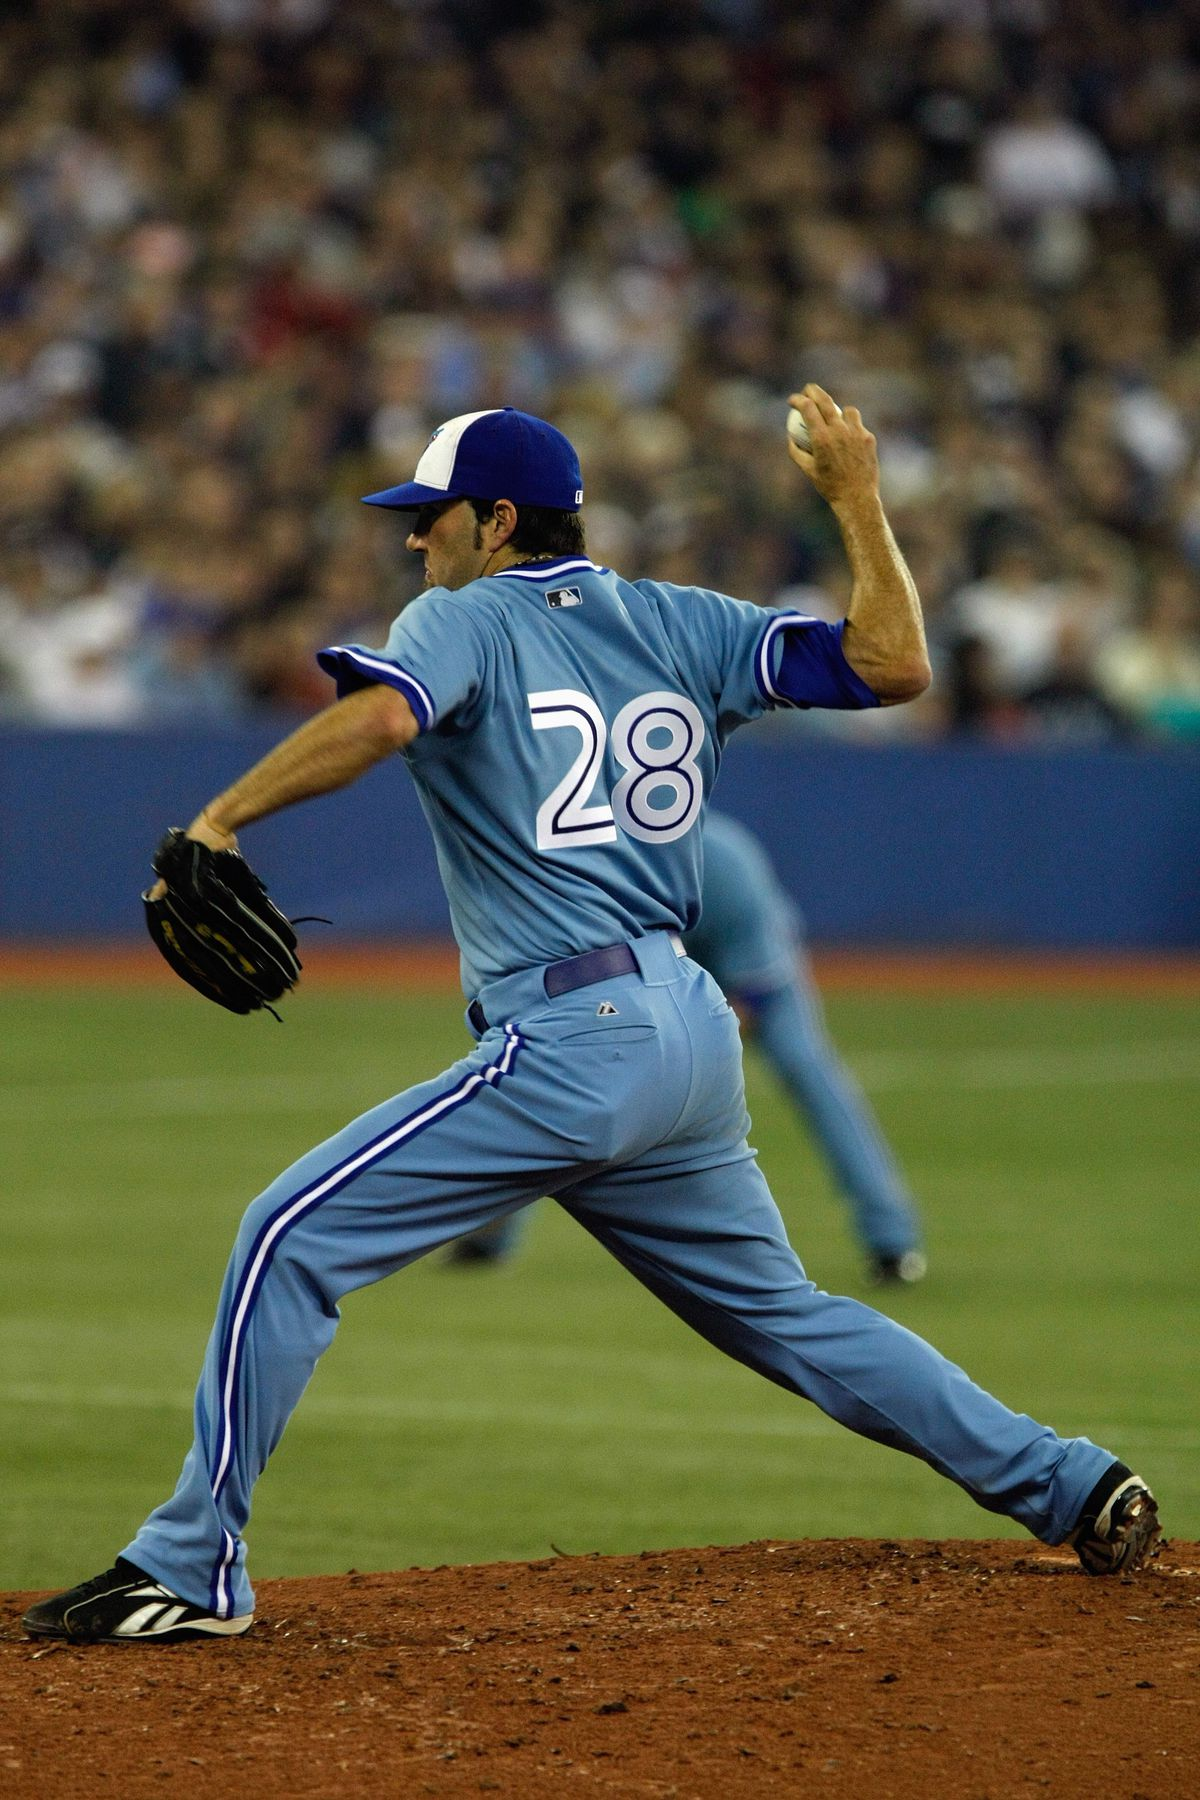 Shaun Marcum's #28 is in focus here as he delivers a pitch in 2008.